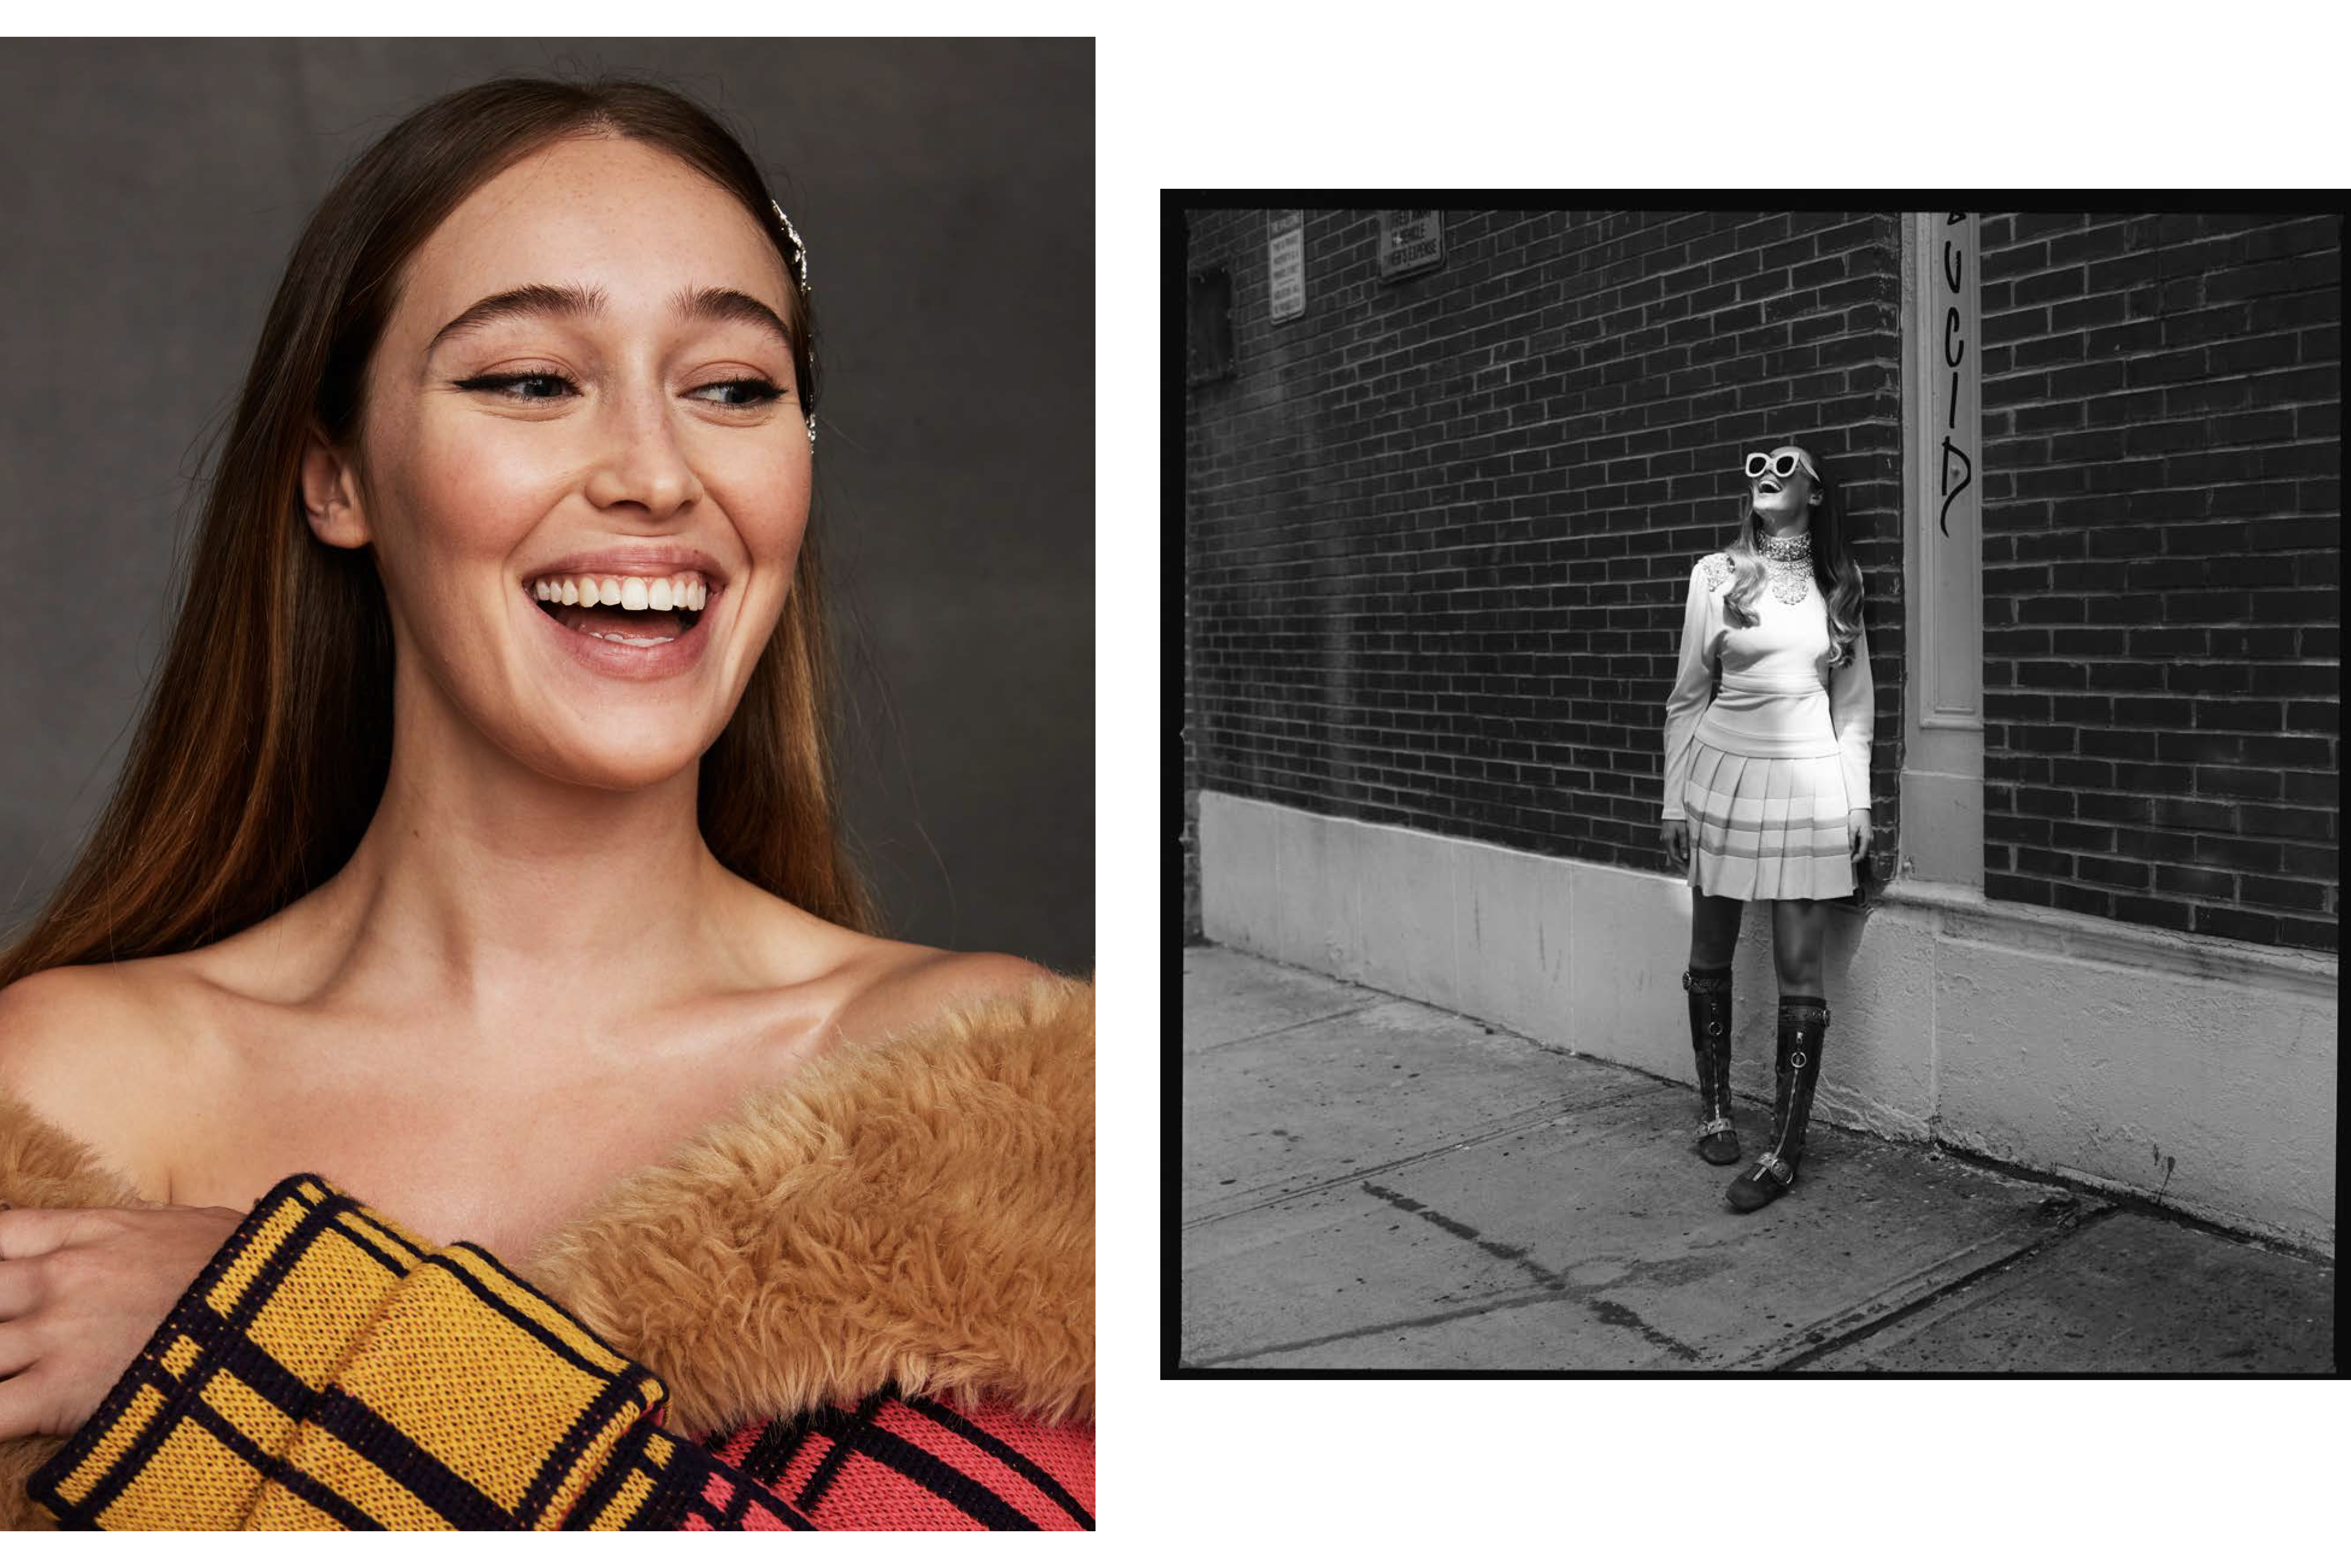 Black and white and colored images of Alycia Debnam Carey by Max papendieck for MONROWE magazine